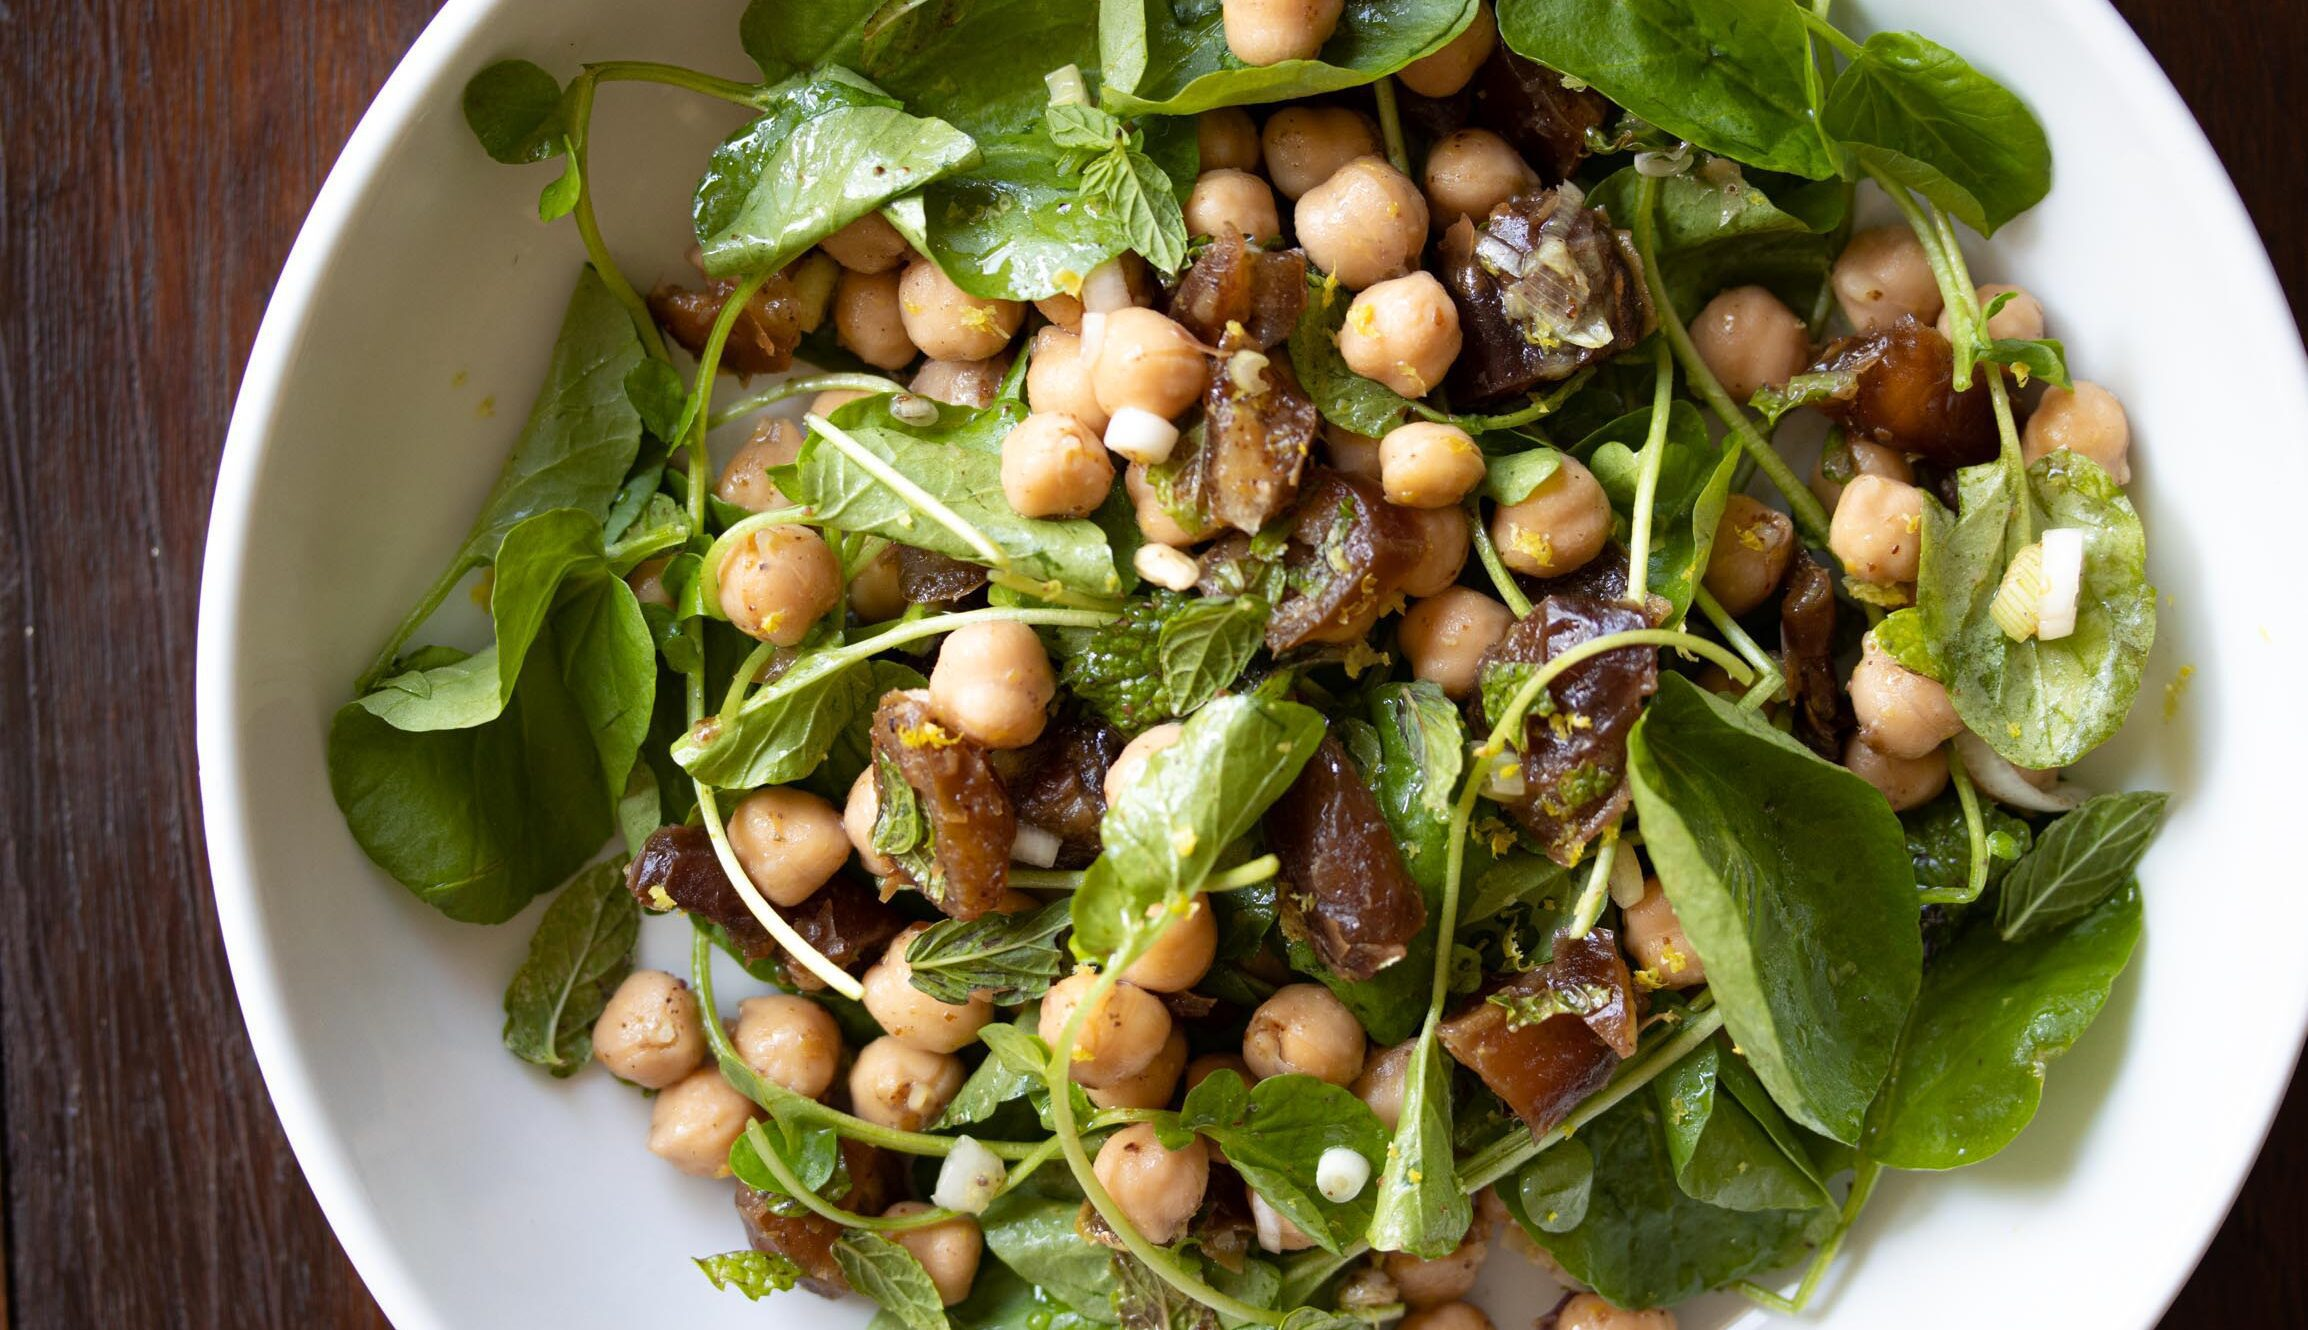 cresson, garbanzo beans, dates salad